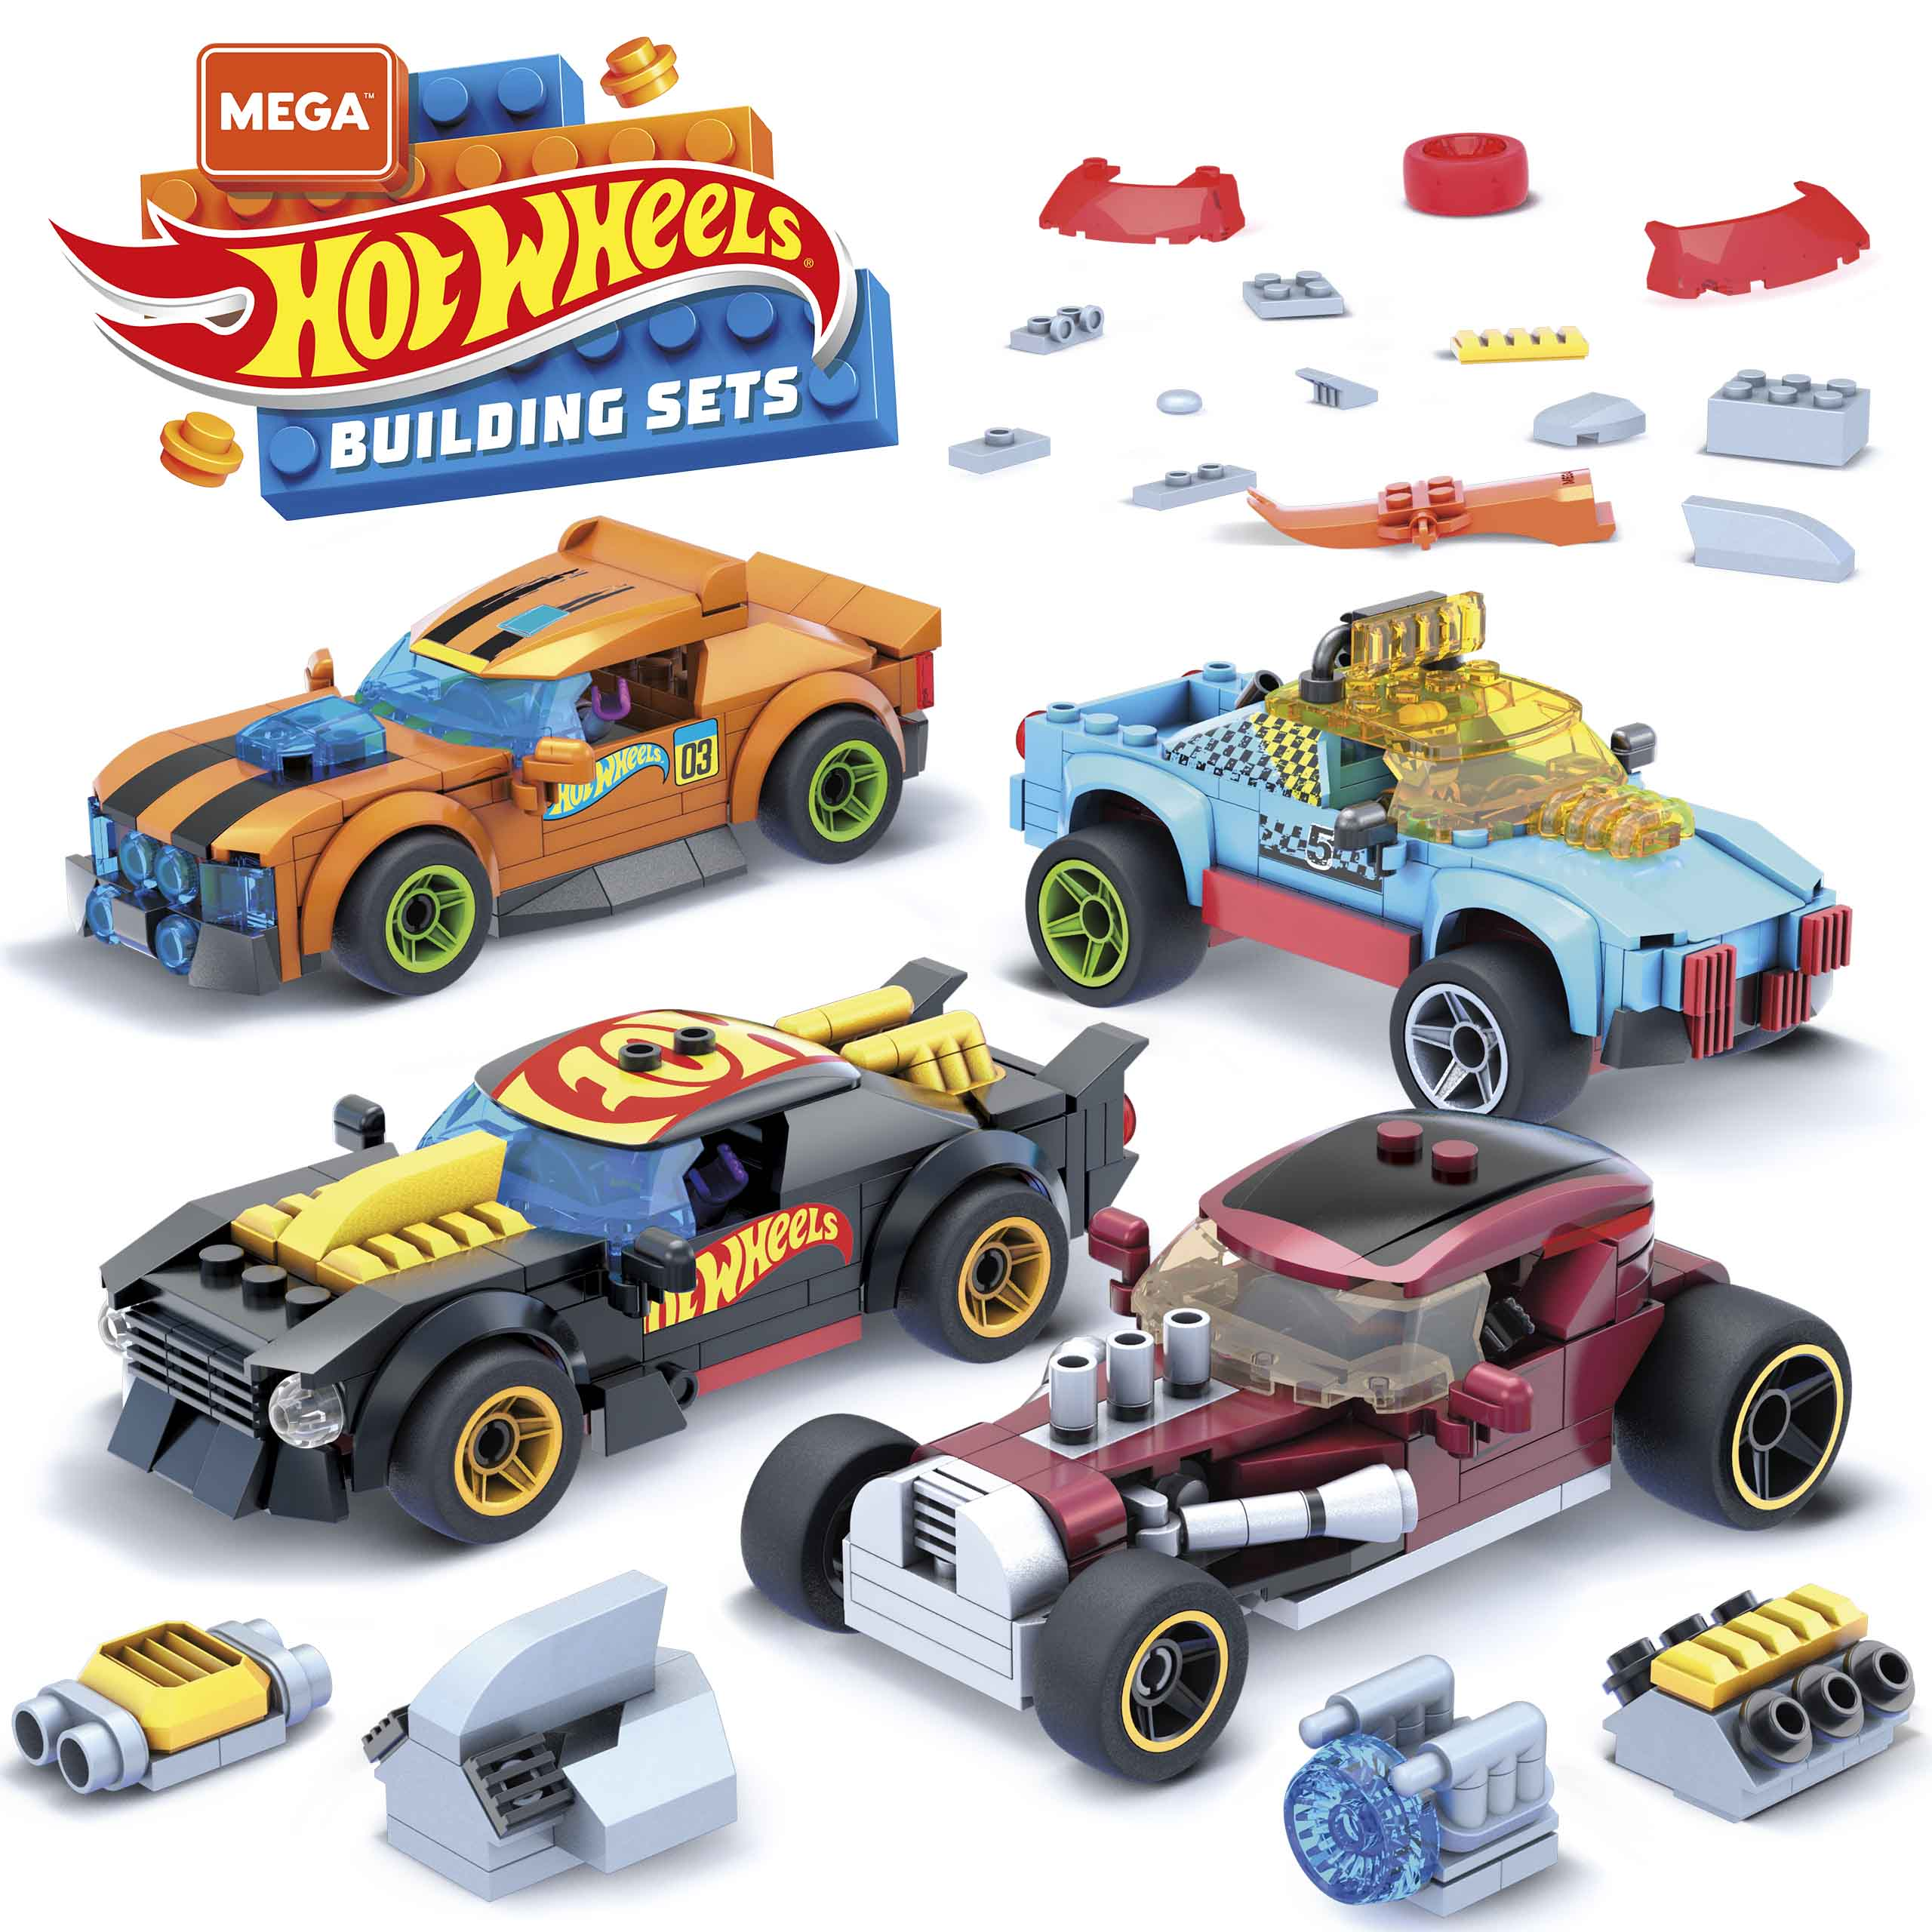 MEGA Construx launches a line of buildable Hot Wheels vehicles 21